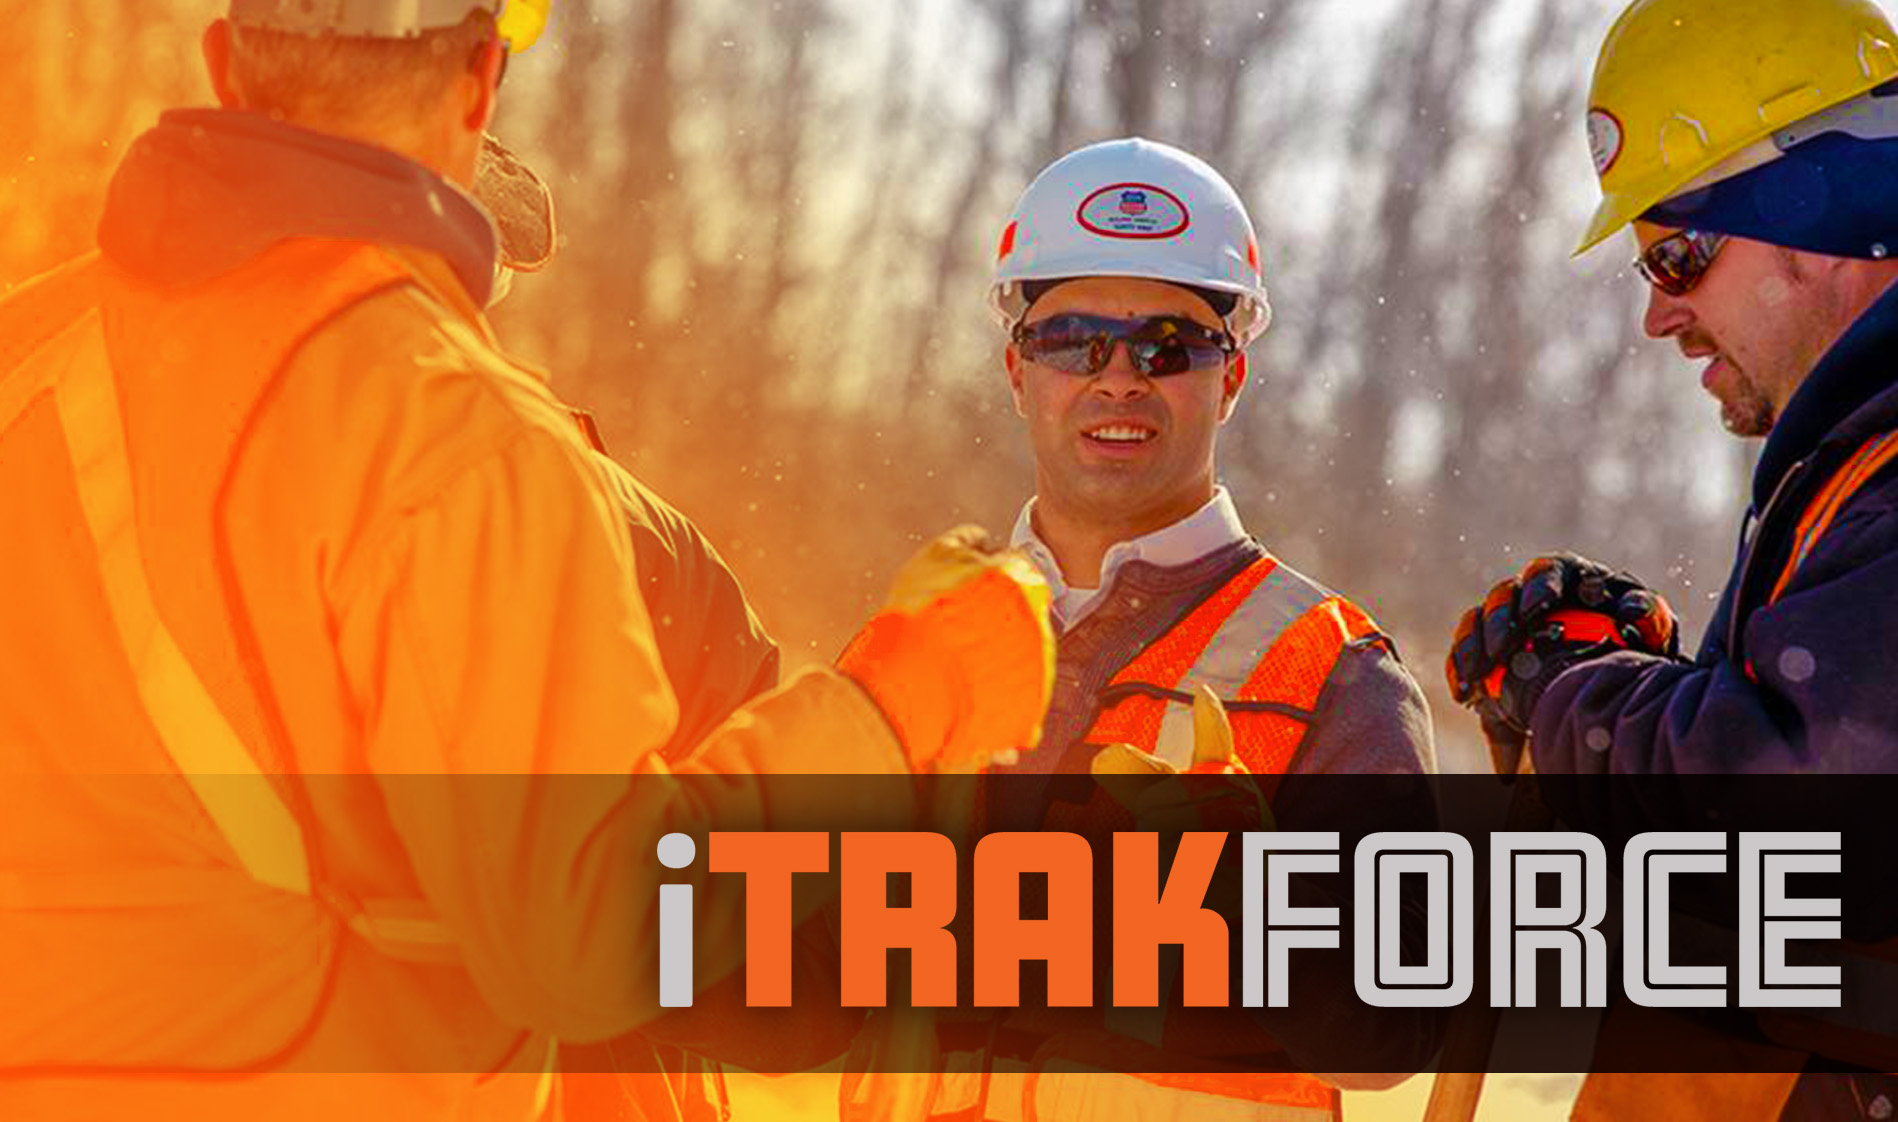 iTrackForce for management of unionized workforces